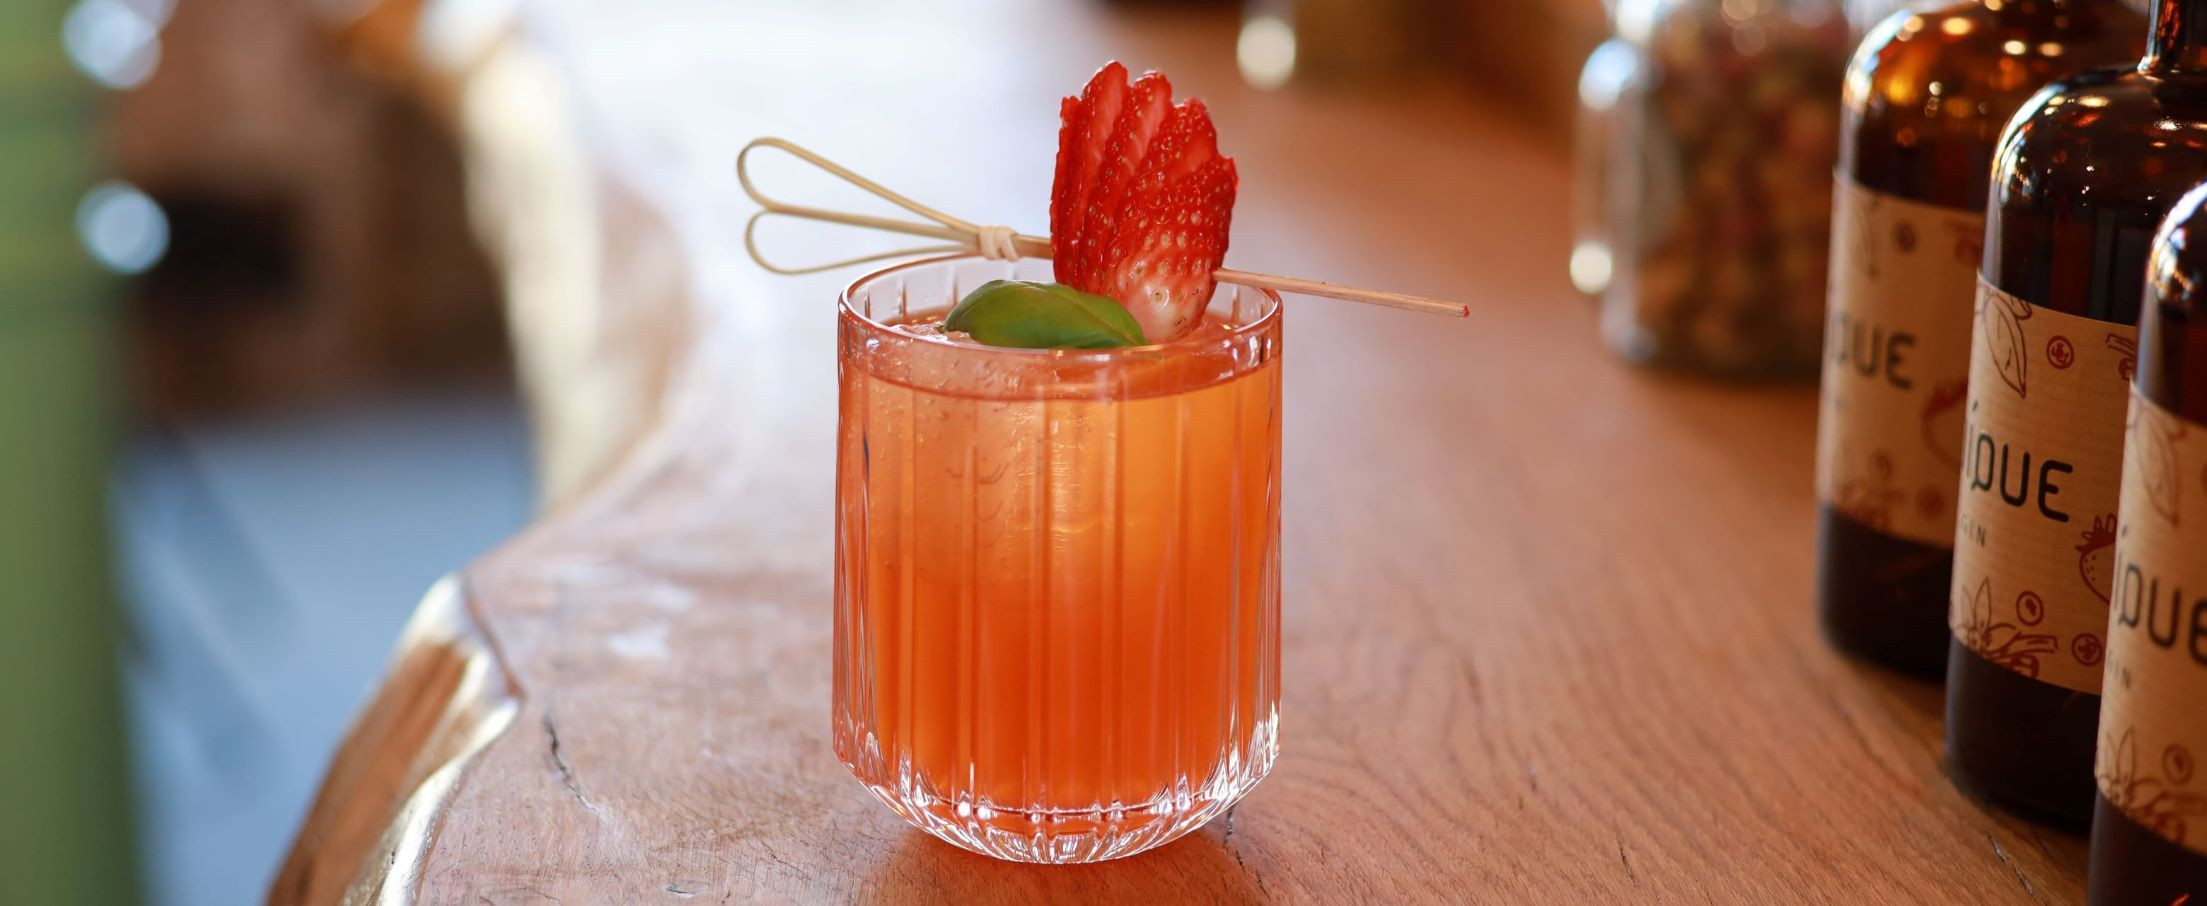 Strawberry Basil Smash mit UNIQUE GIN